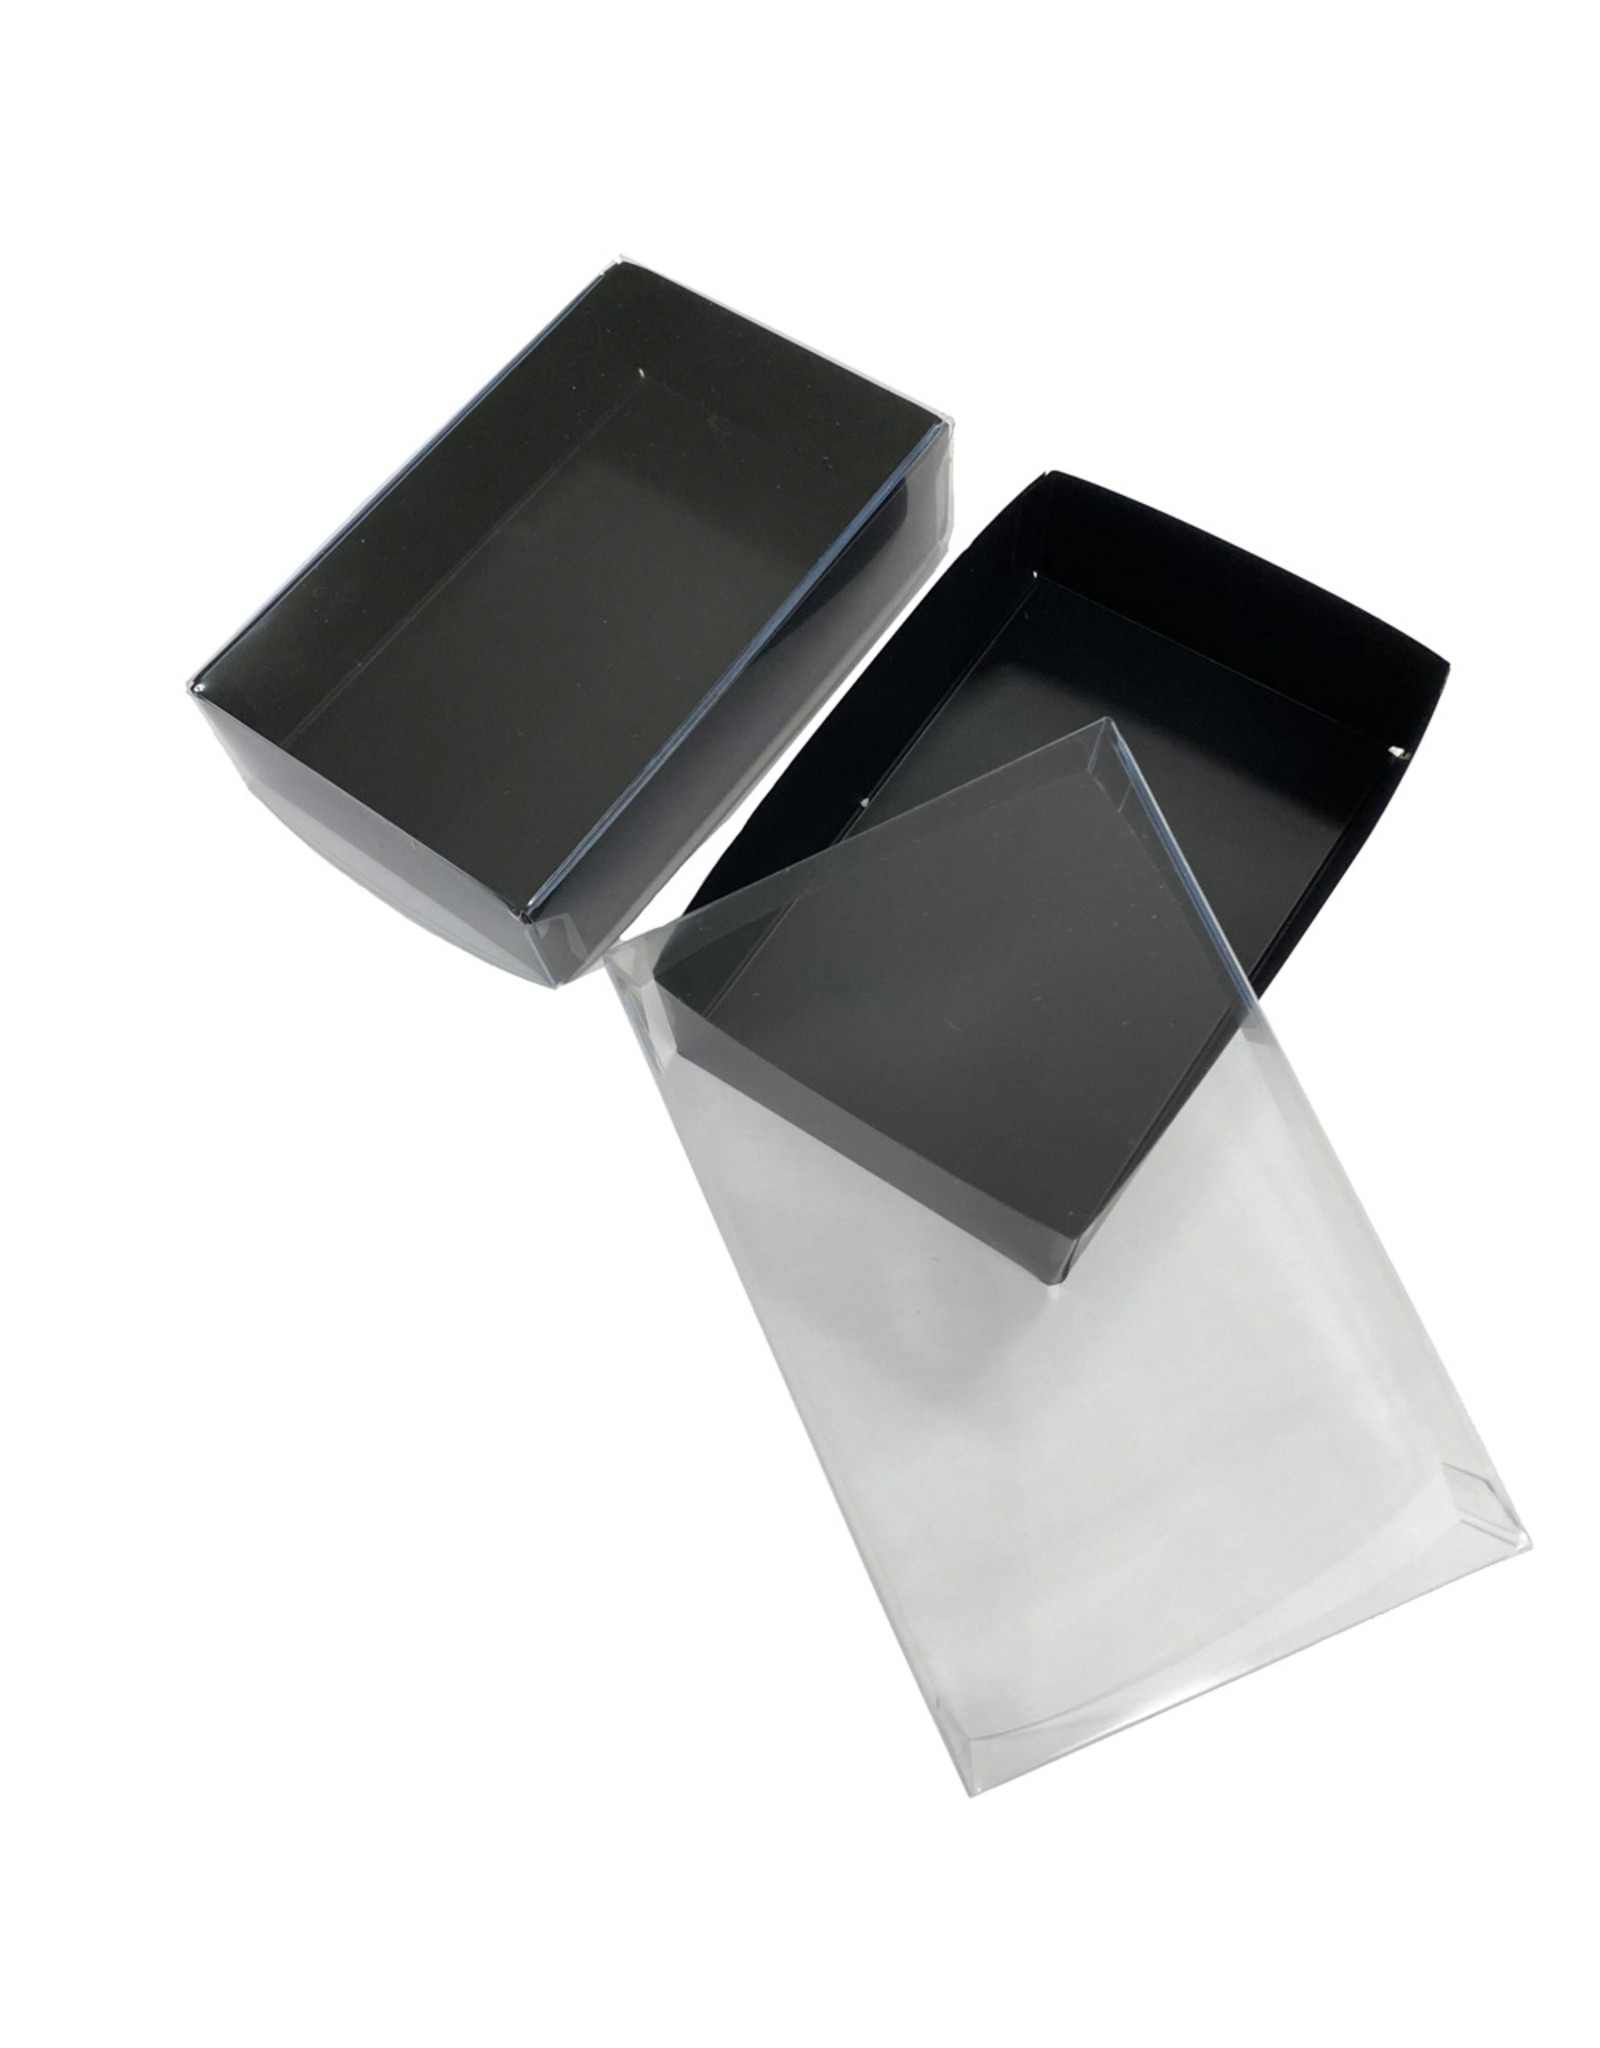 Black mini sweets box - 124x79x30mm (100 pieces)